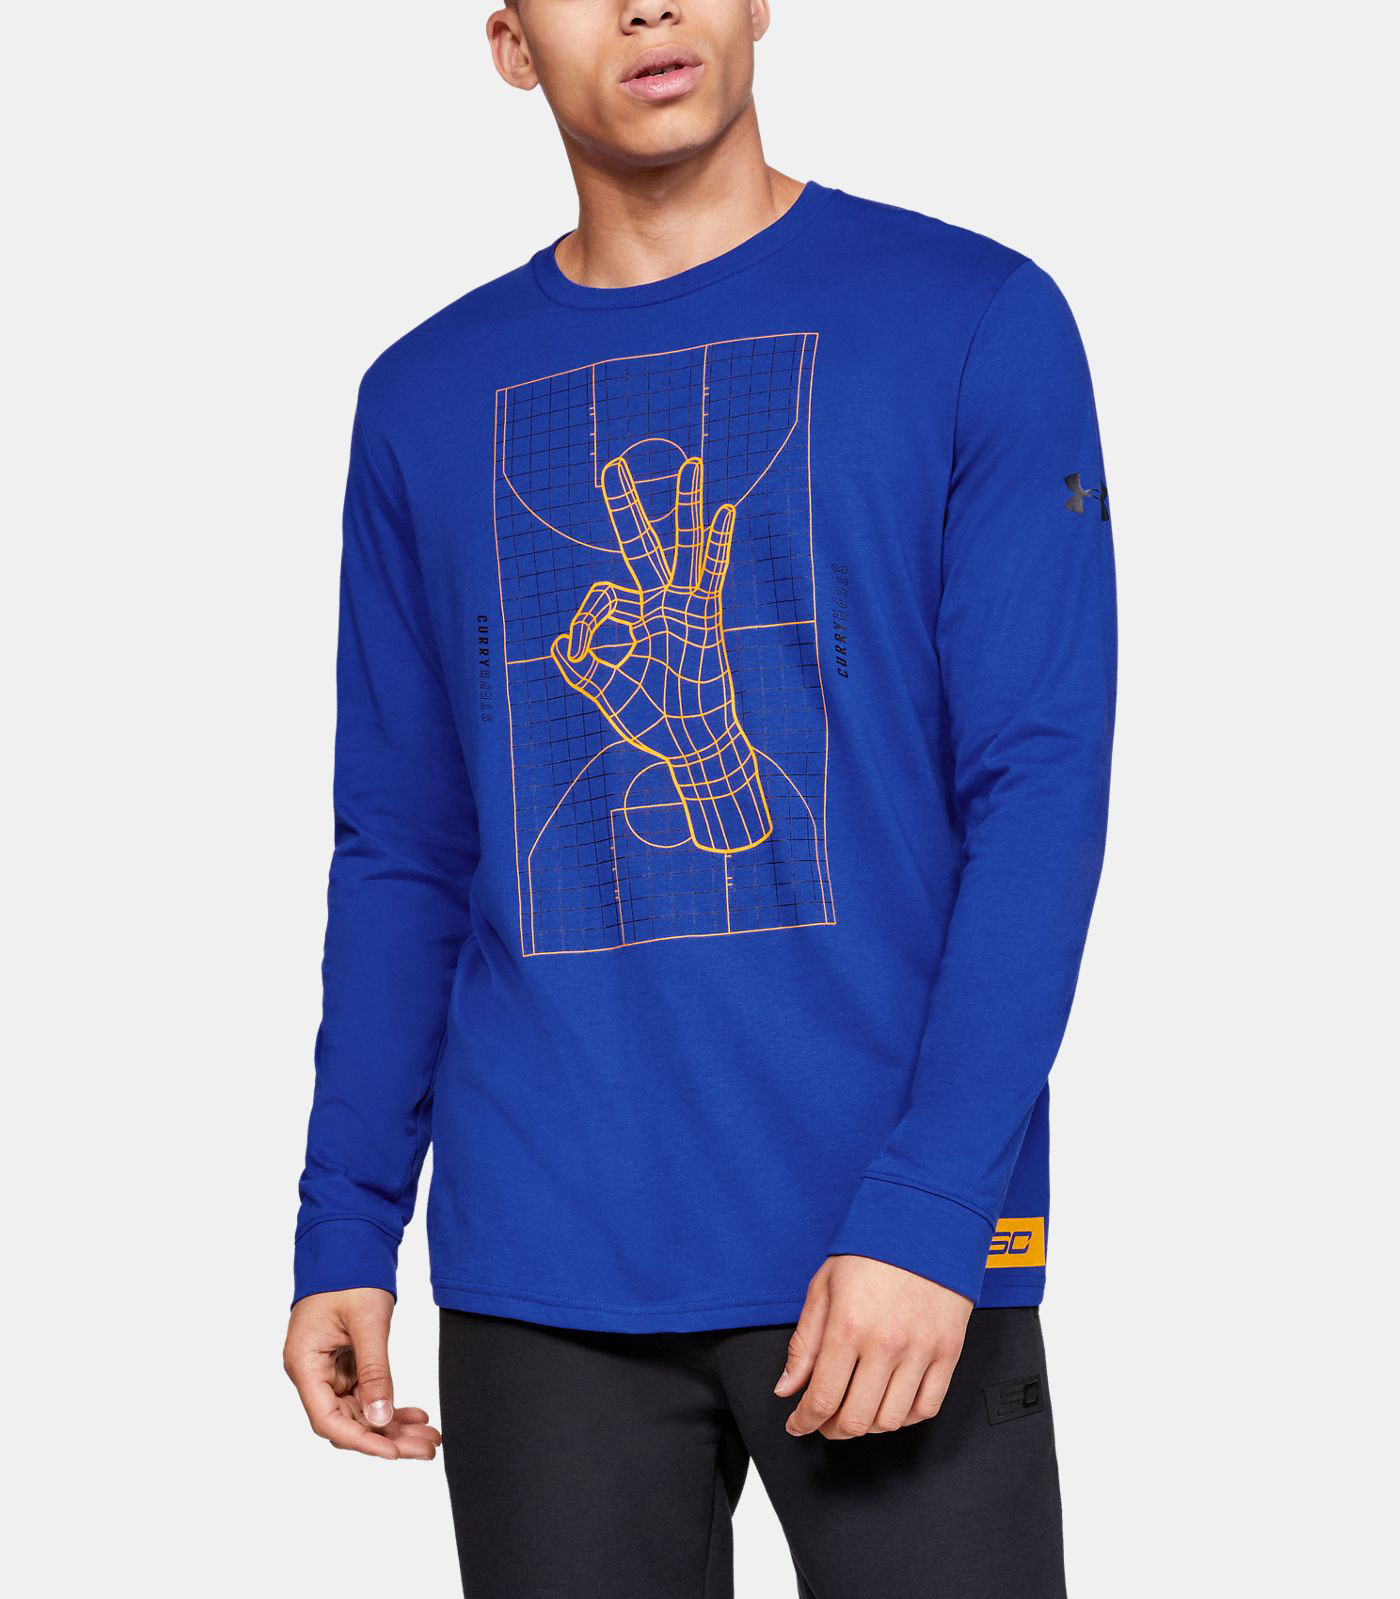 curry-7-long-sleeve-shirt-blue